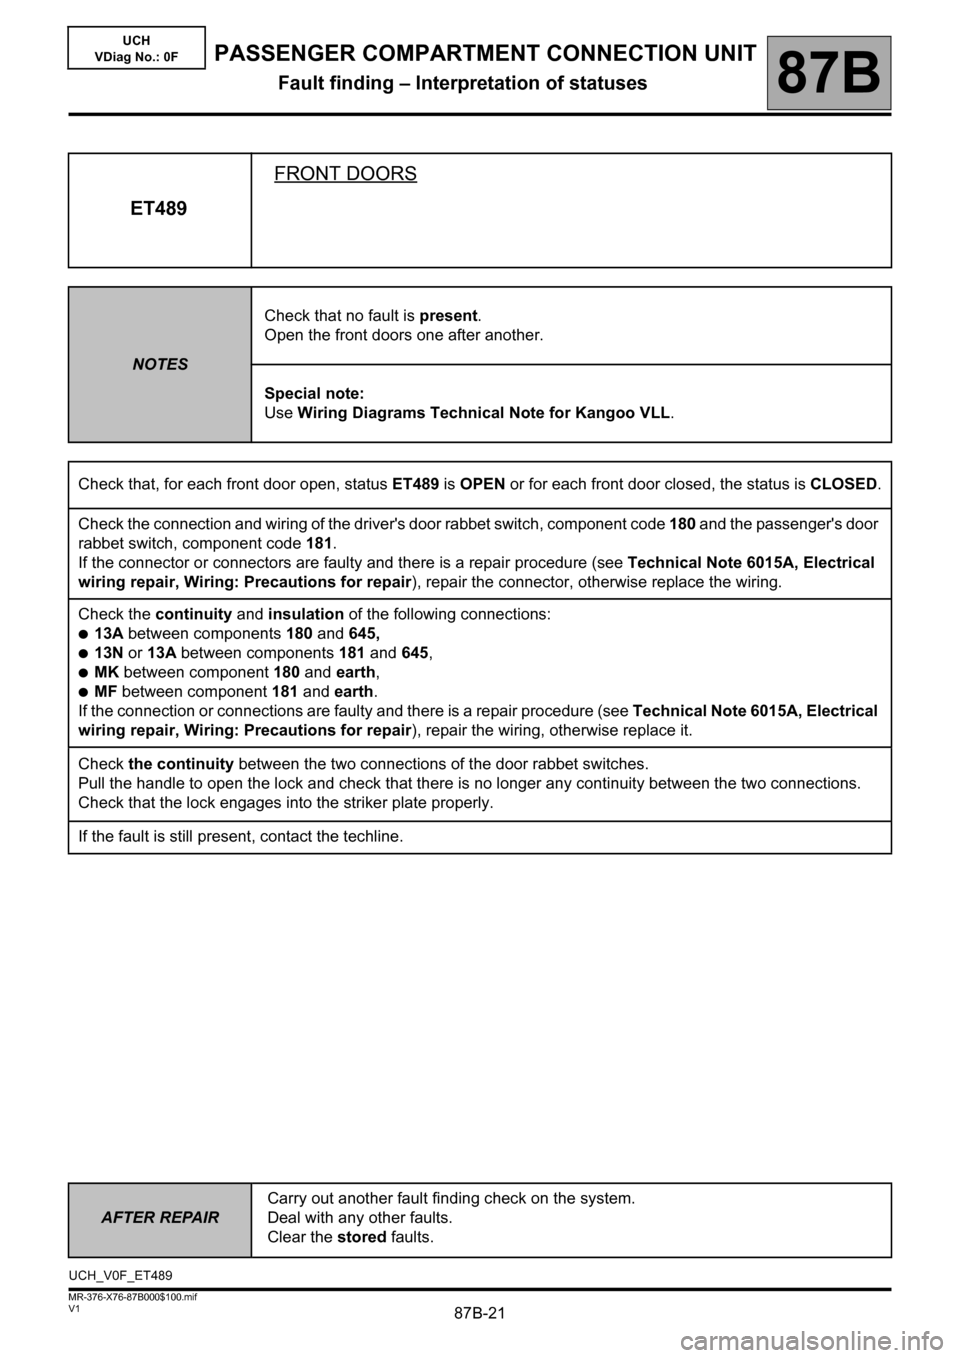 RENAULT KANGOO 2013 X61 / 2.G Passenger Comparment Connection Unit Workshop Manual, Page 21